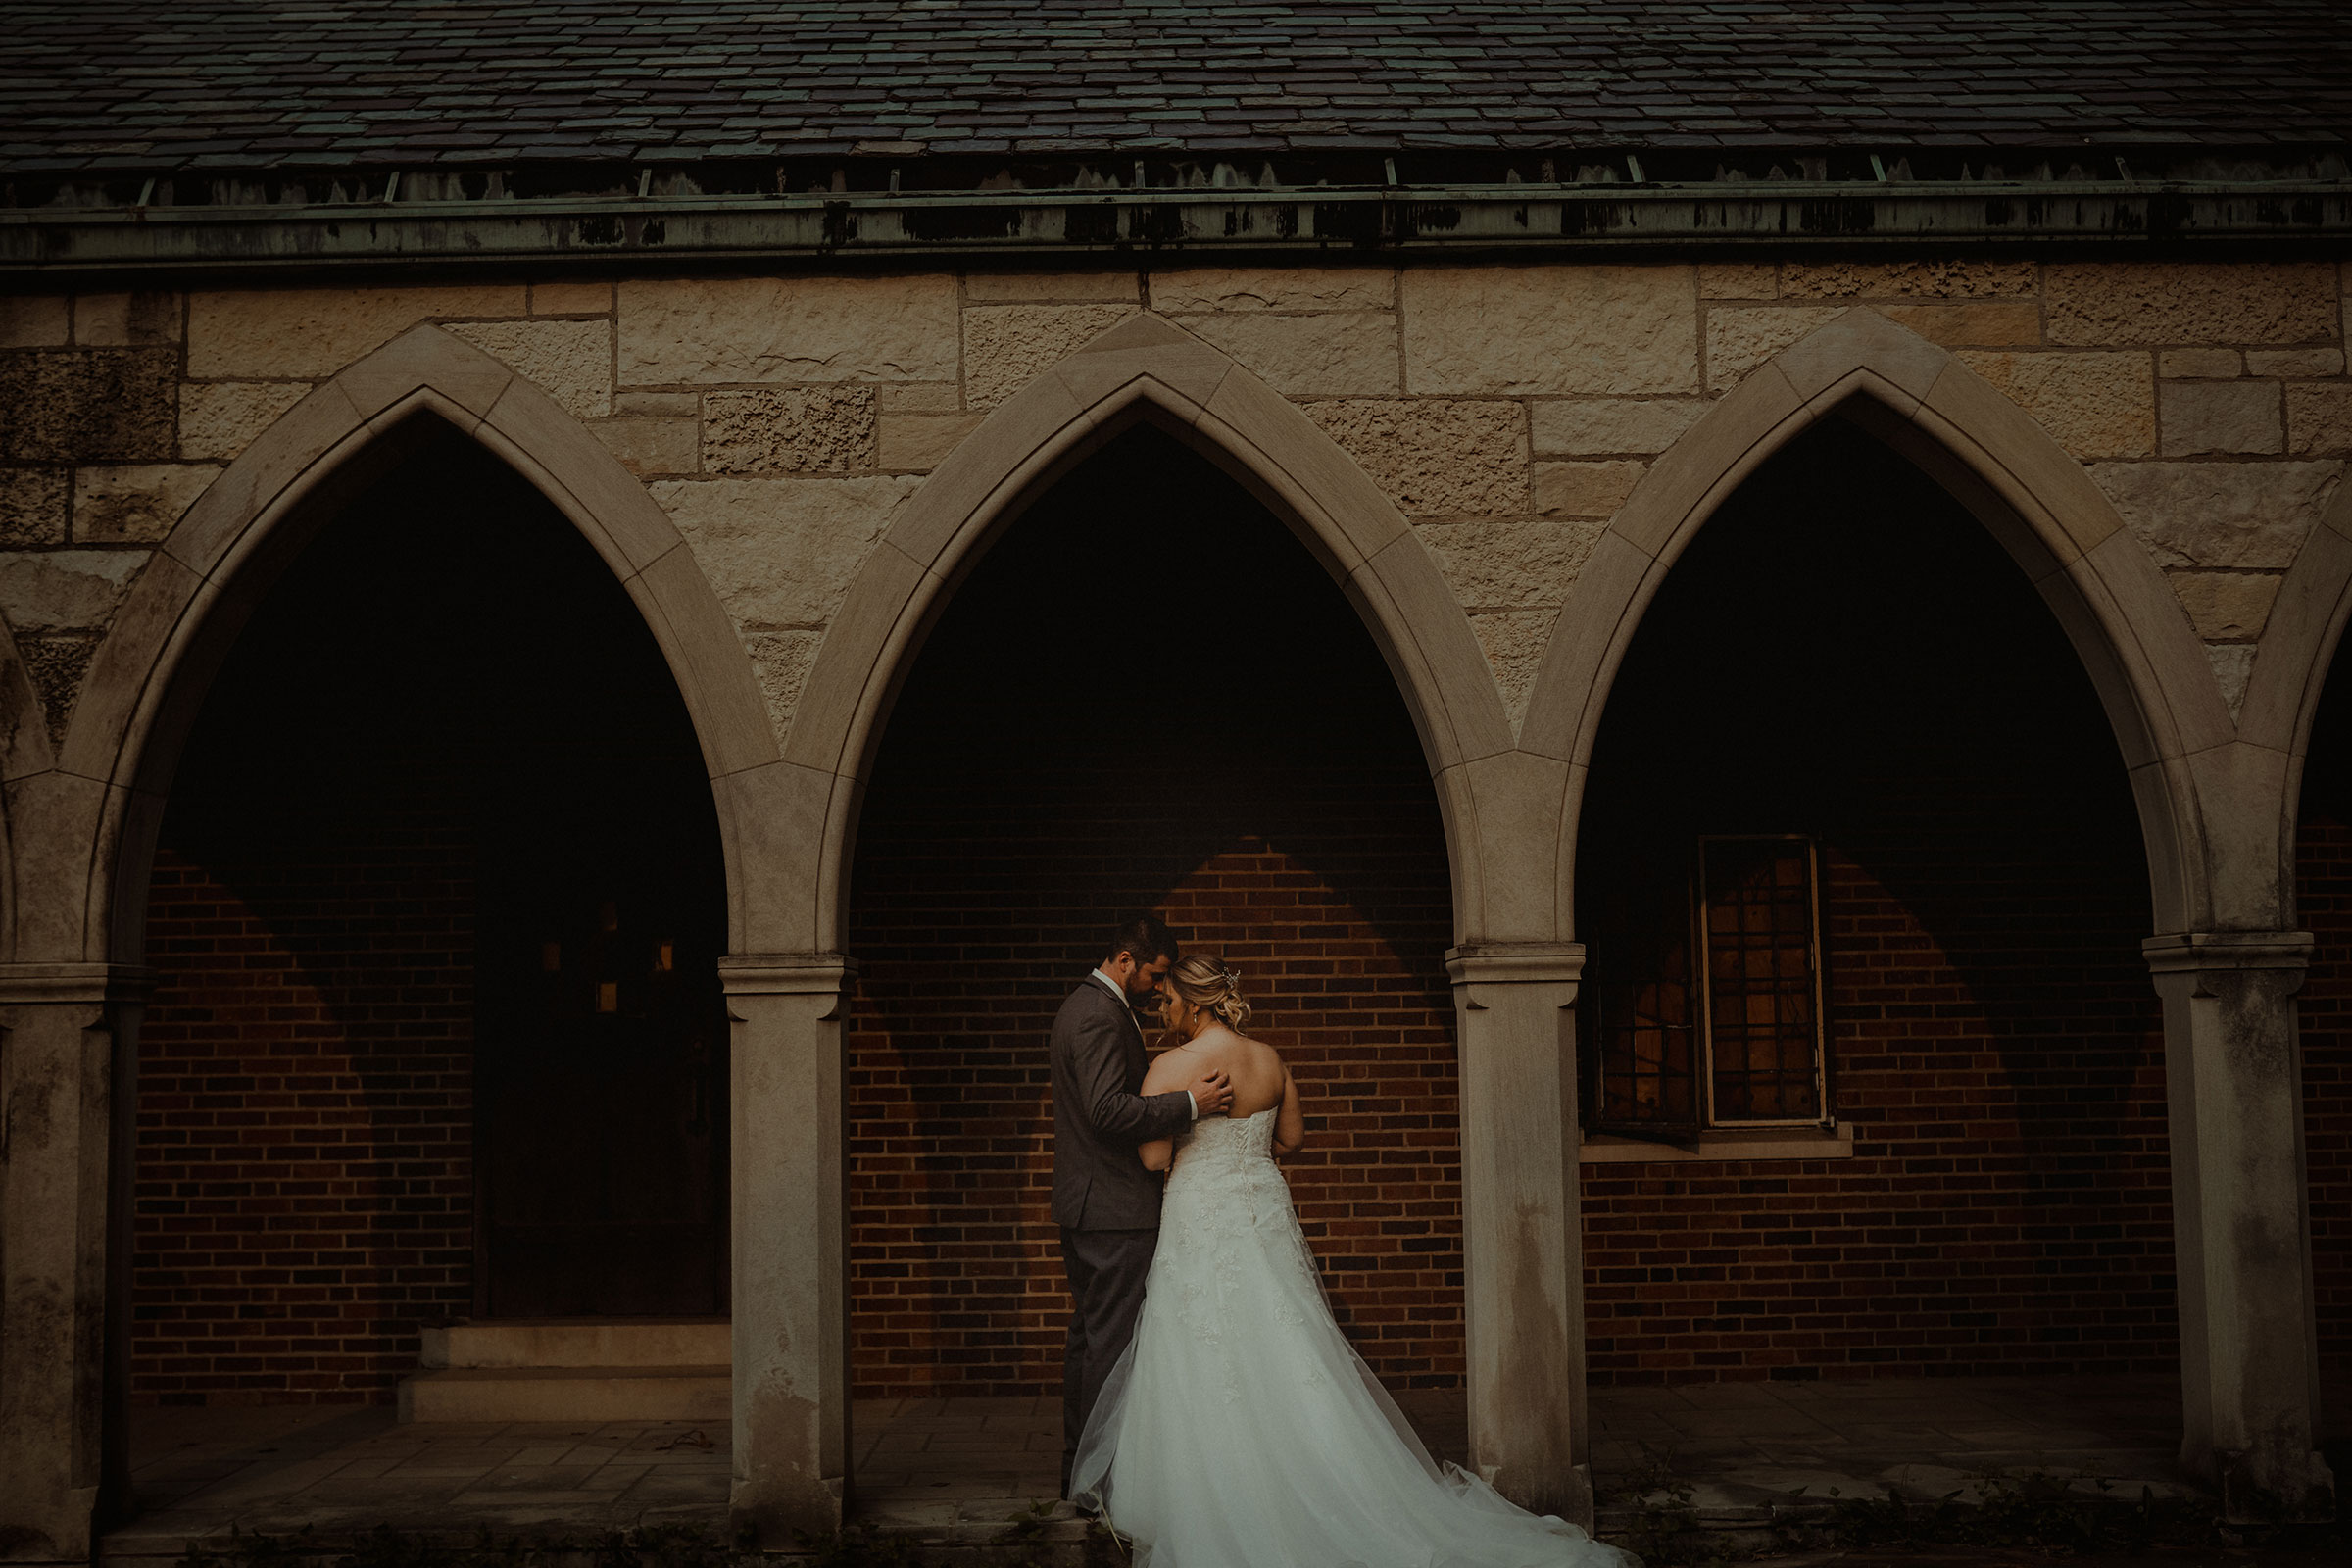 groom-holding-bride-under-church-archway-decades-event-center-building-desmoines-iowa-raelyn-ramey-photography..jpg